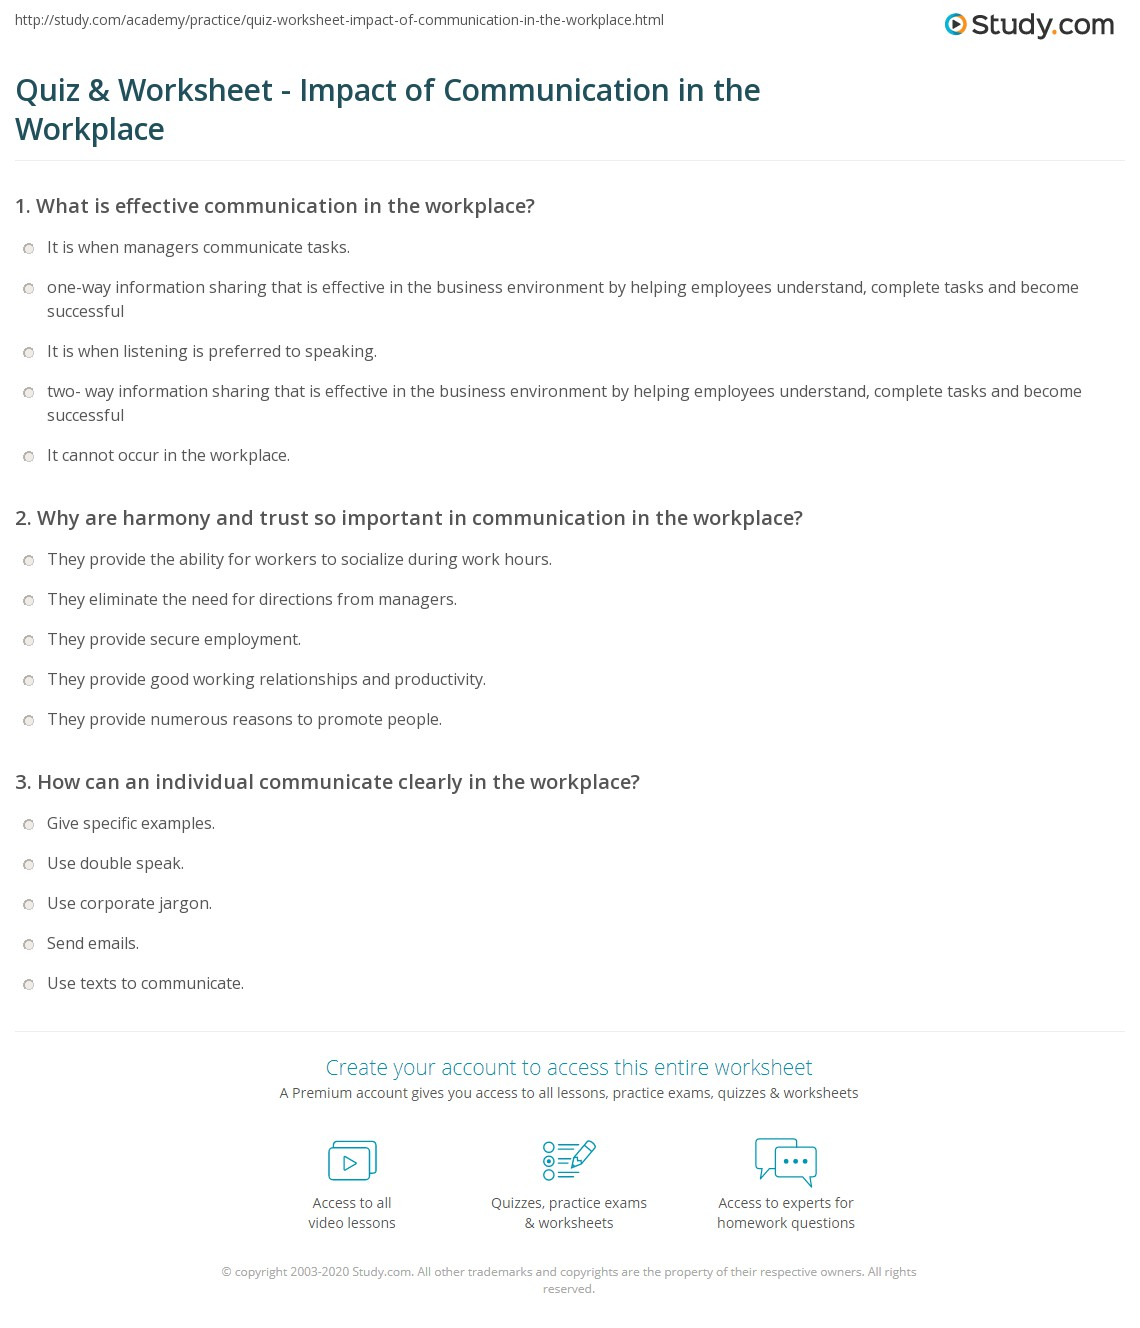 quiz & worksheet - impact of communication in the workplace | study